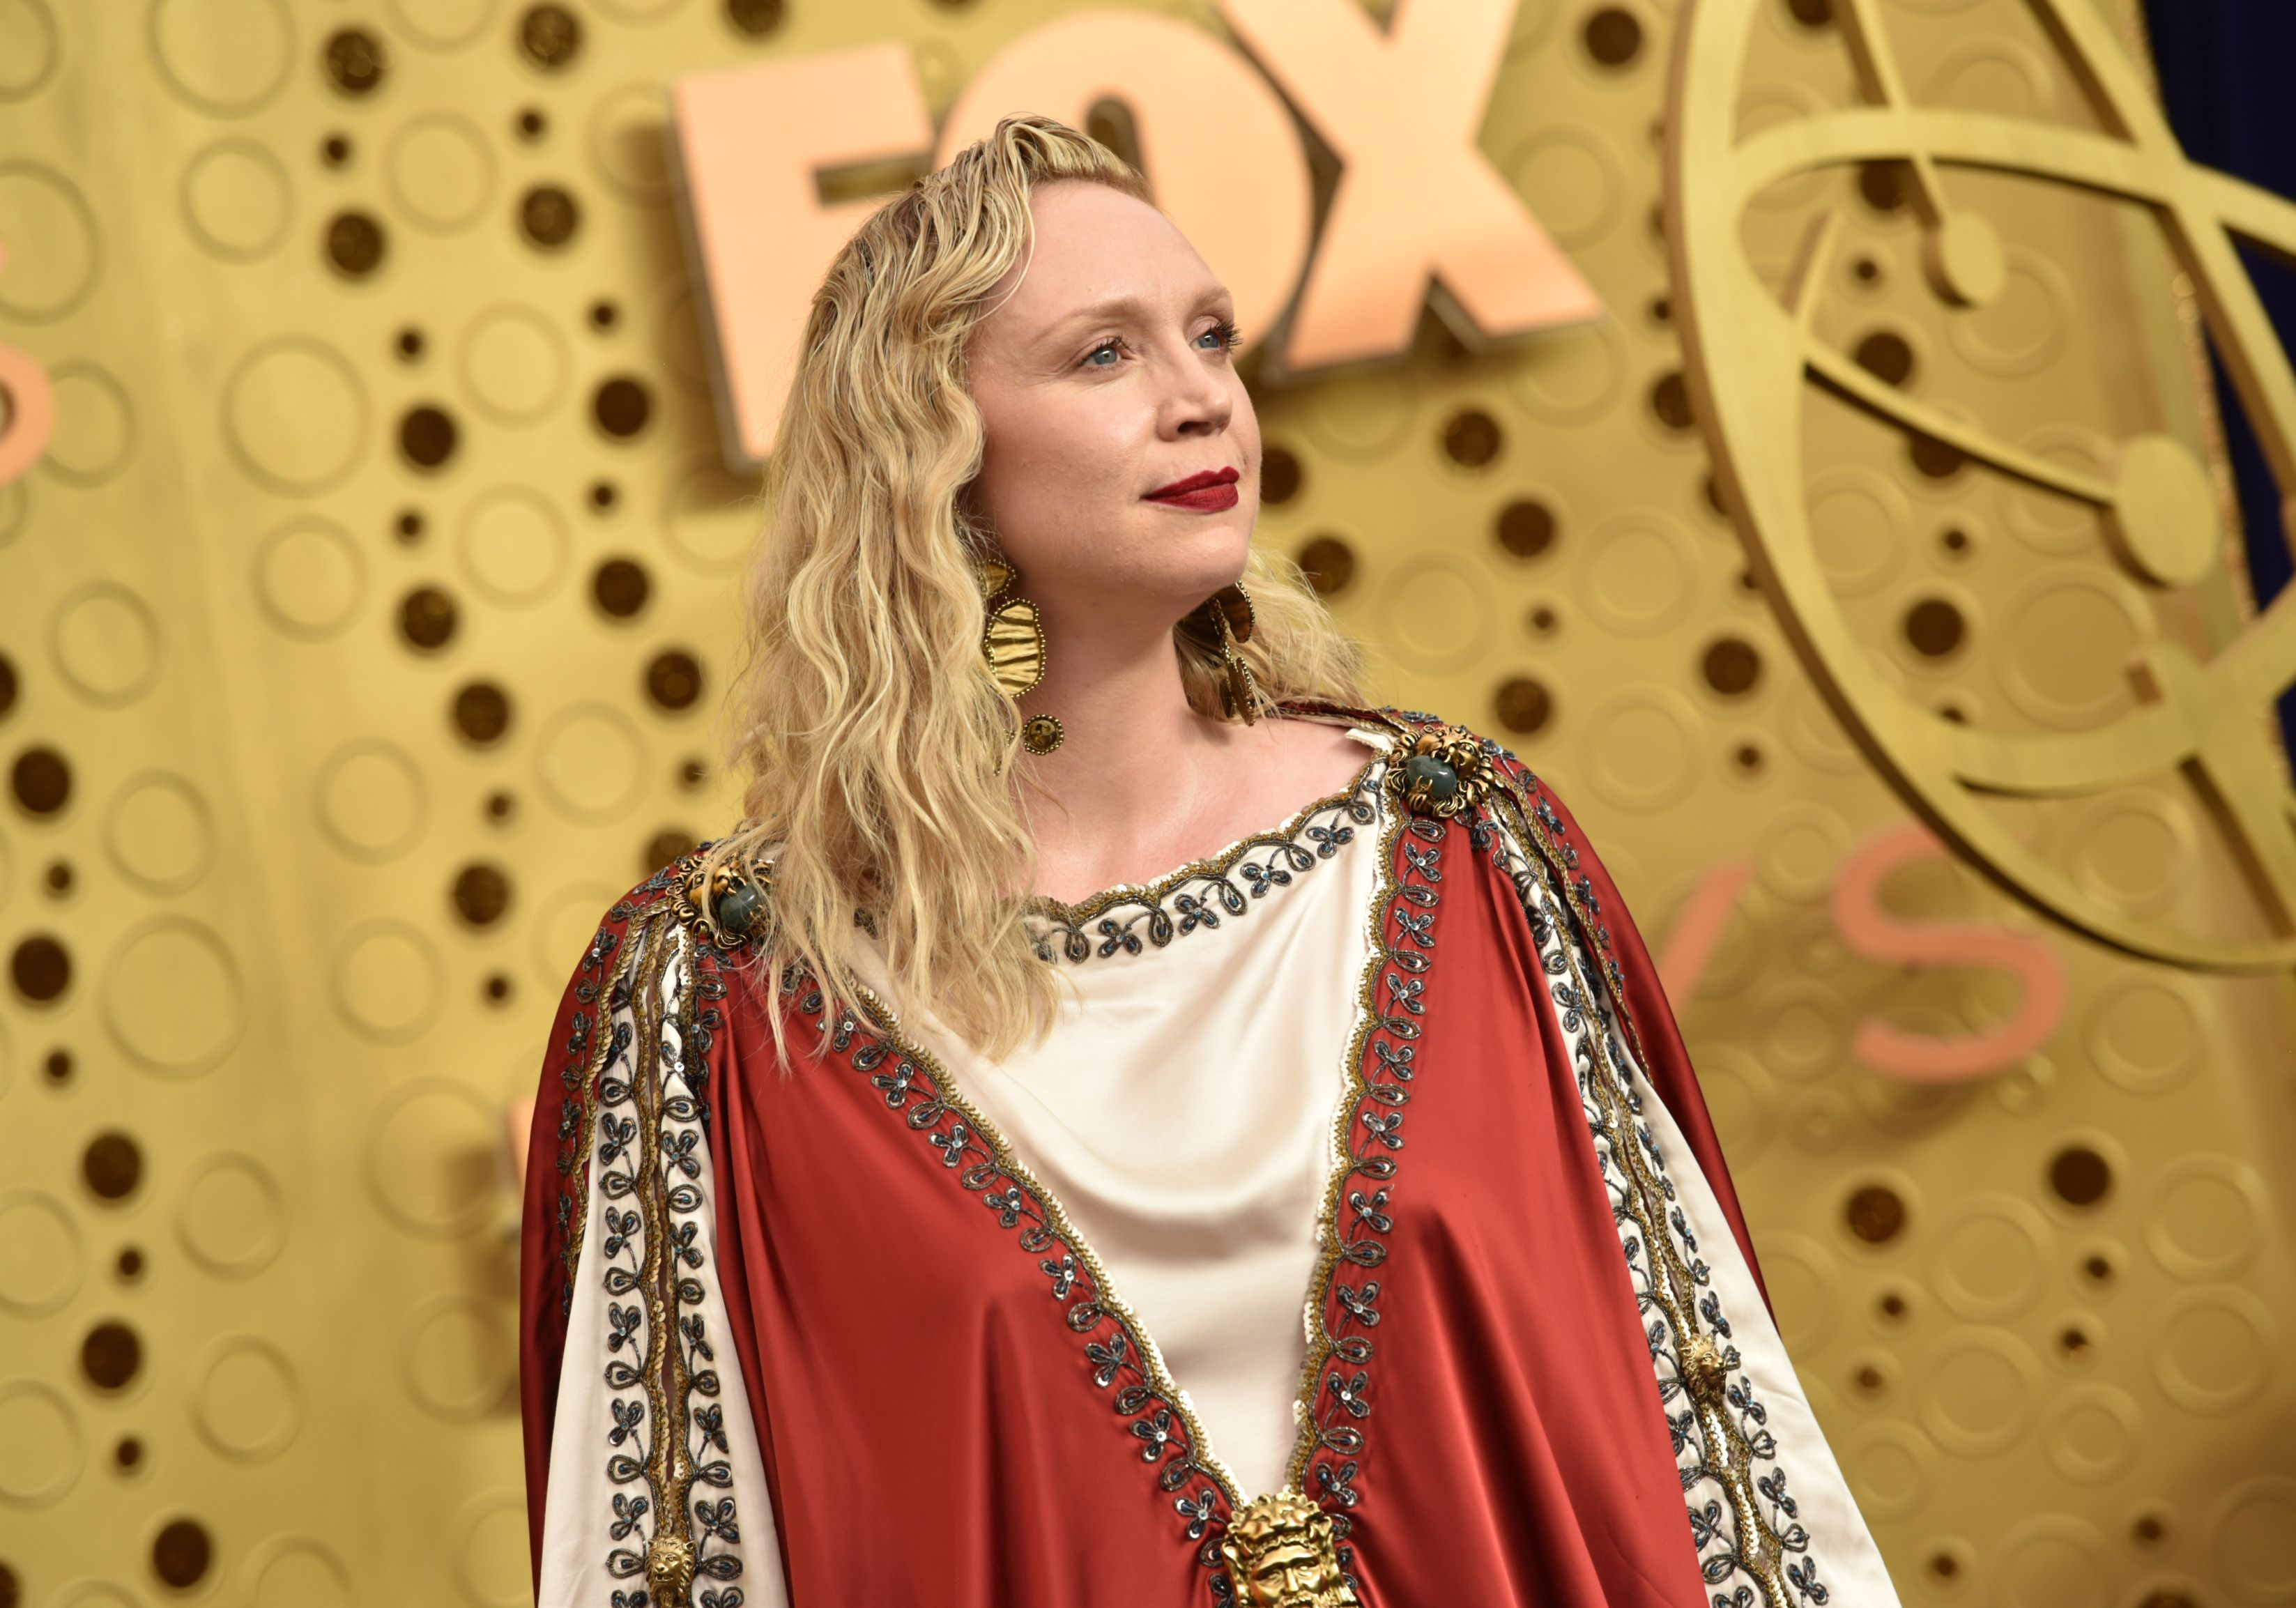 Twitter Is Losing It Over Gwendoline Christie's Jesus-Inspired Emmys Look